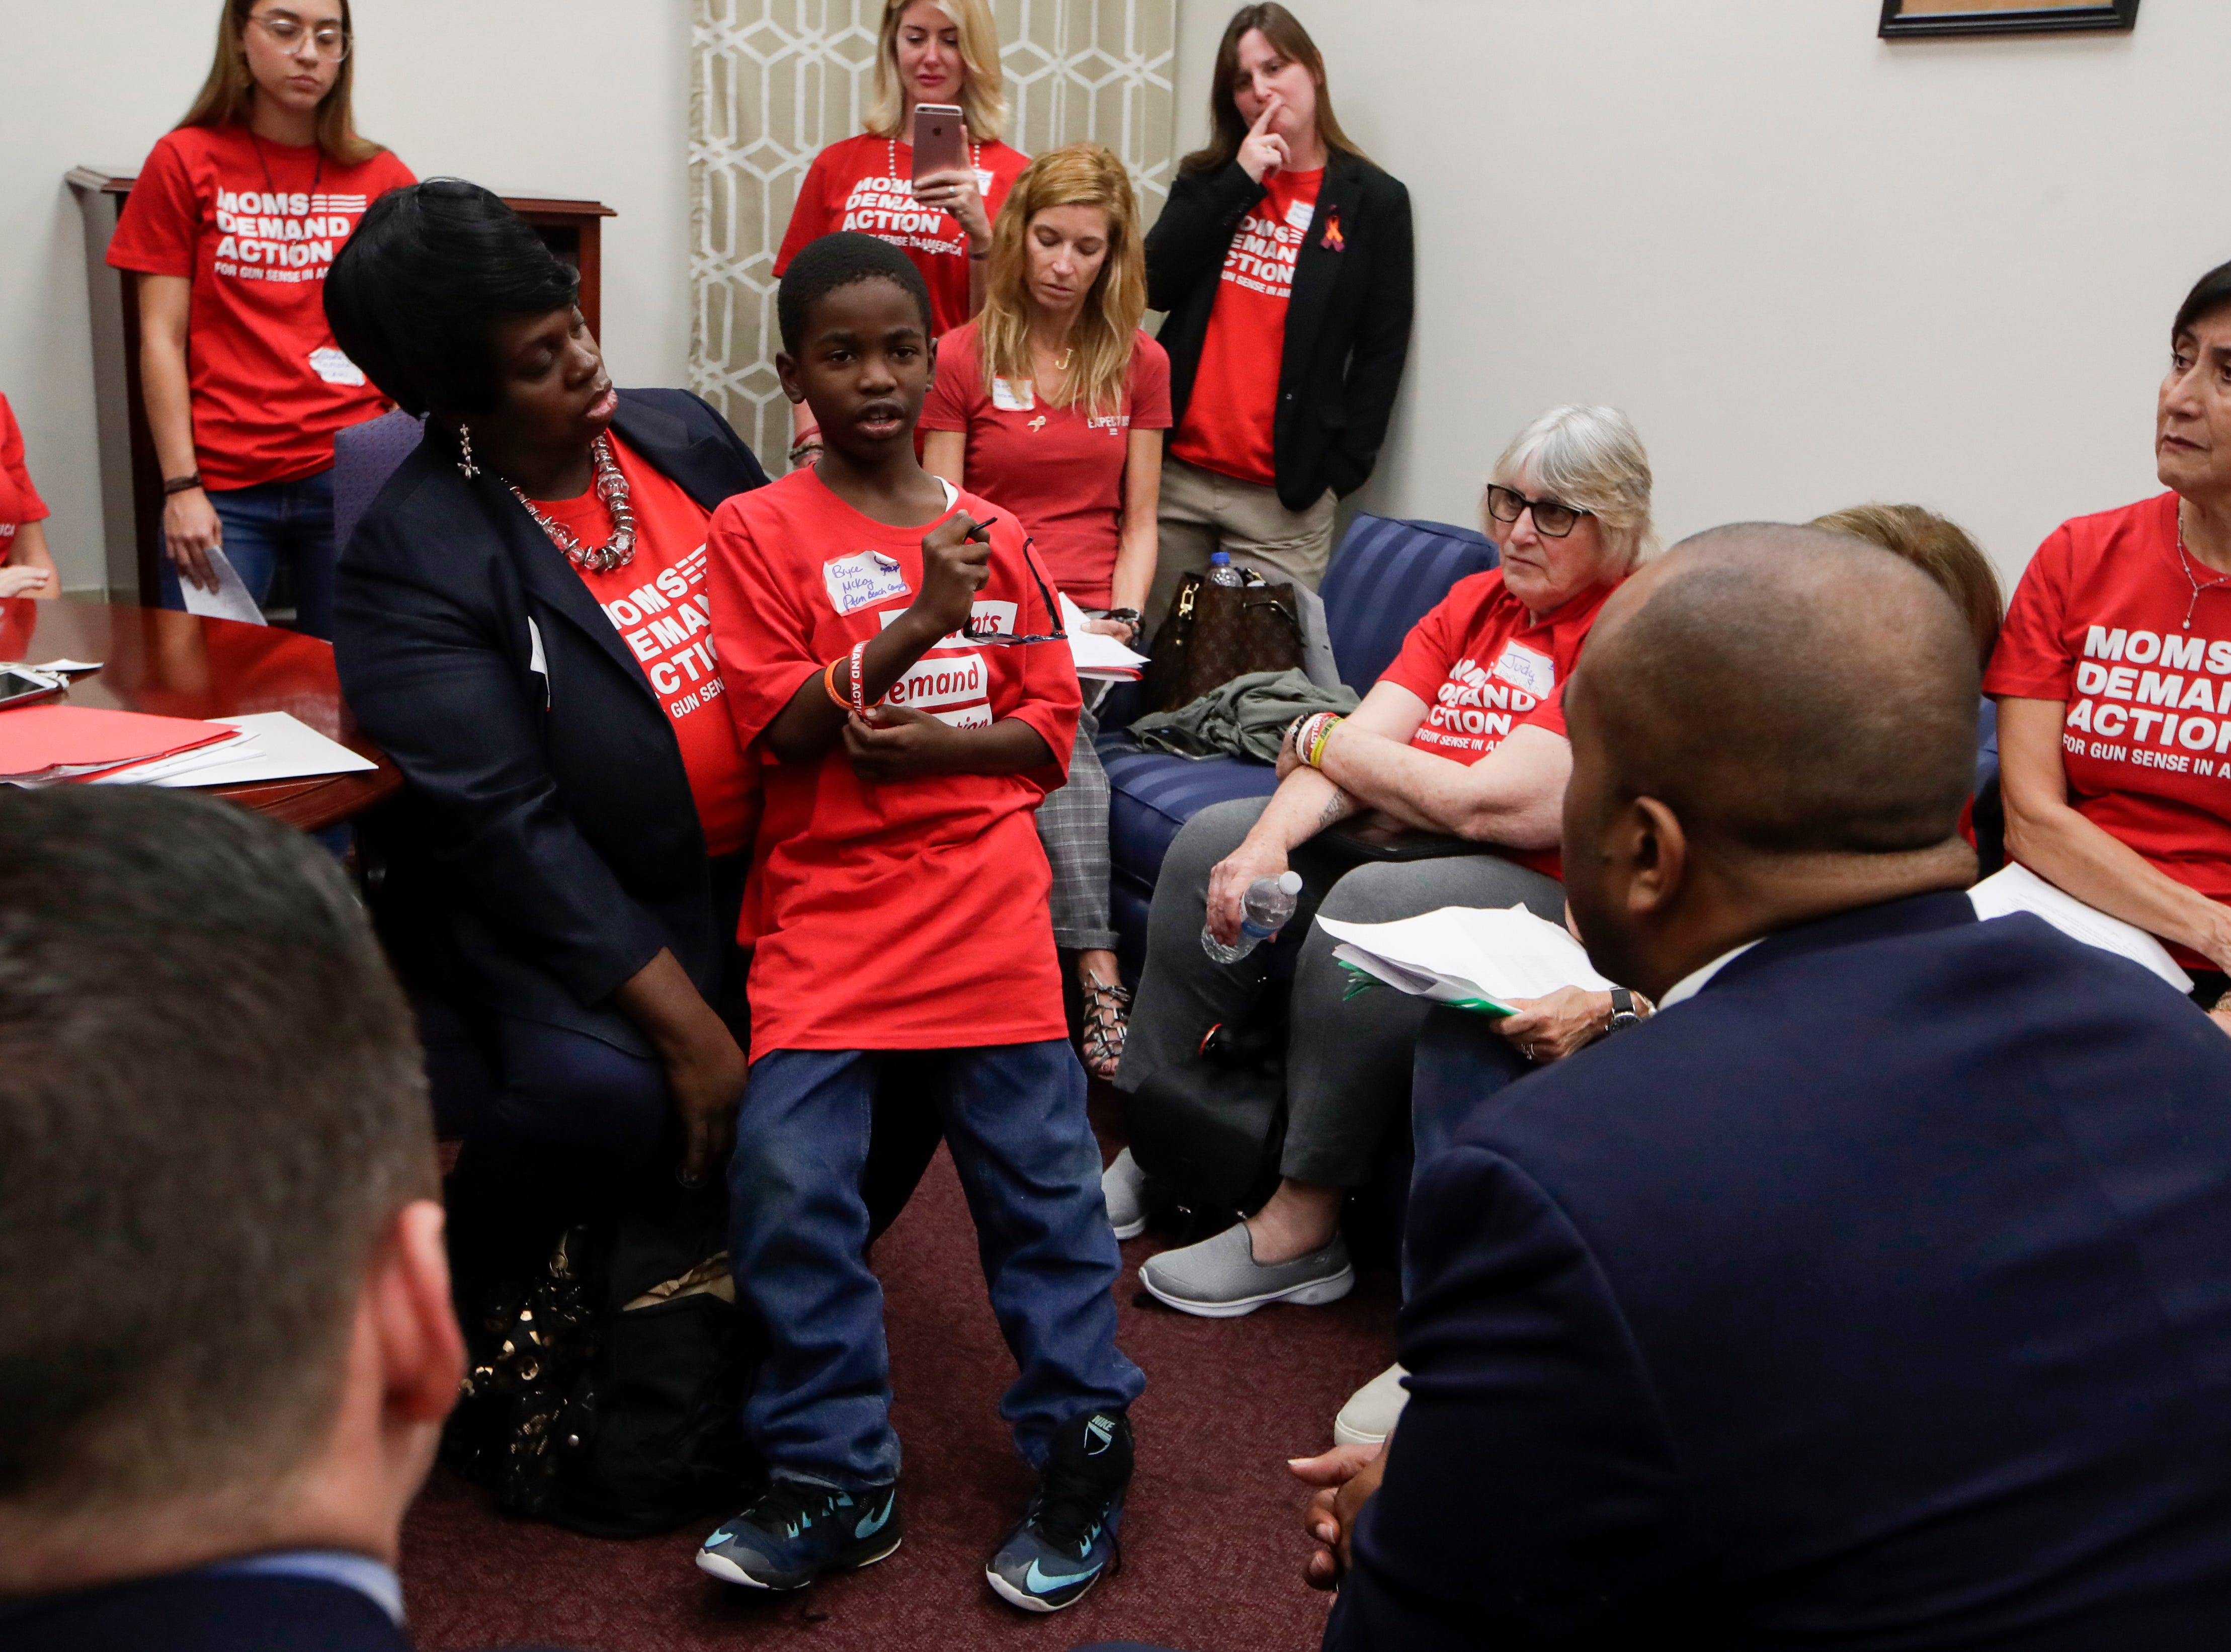 Bryce Mckoy, 9, a second grader from Palm Beach County, shyly tells Sen. Bobby Powell about his fears about going to school he developed after the shooting at Marjory Stoneman Douglas almost a year ago. Mckoy and his mother Teisha Mckoy visited the Capitol along with over 500 other activists from Moms Demand Action to lobby for stricter gun laws. The pair also recently visited Washington, D.C. to lobby there.